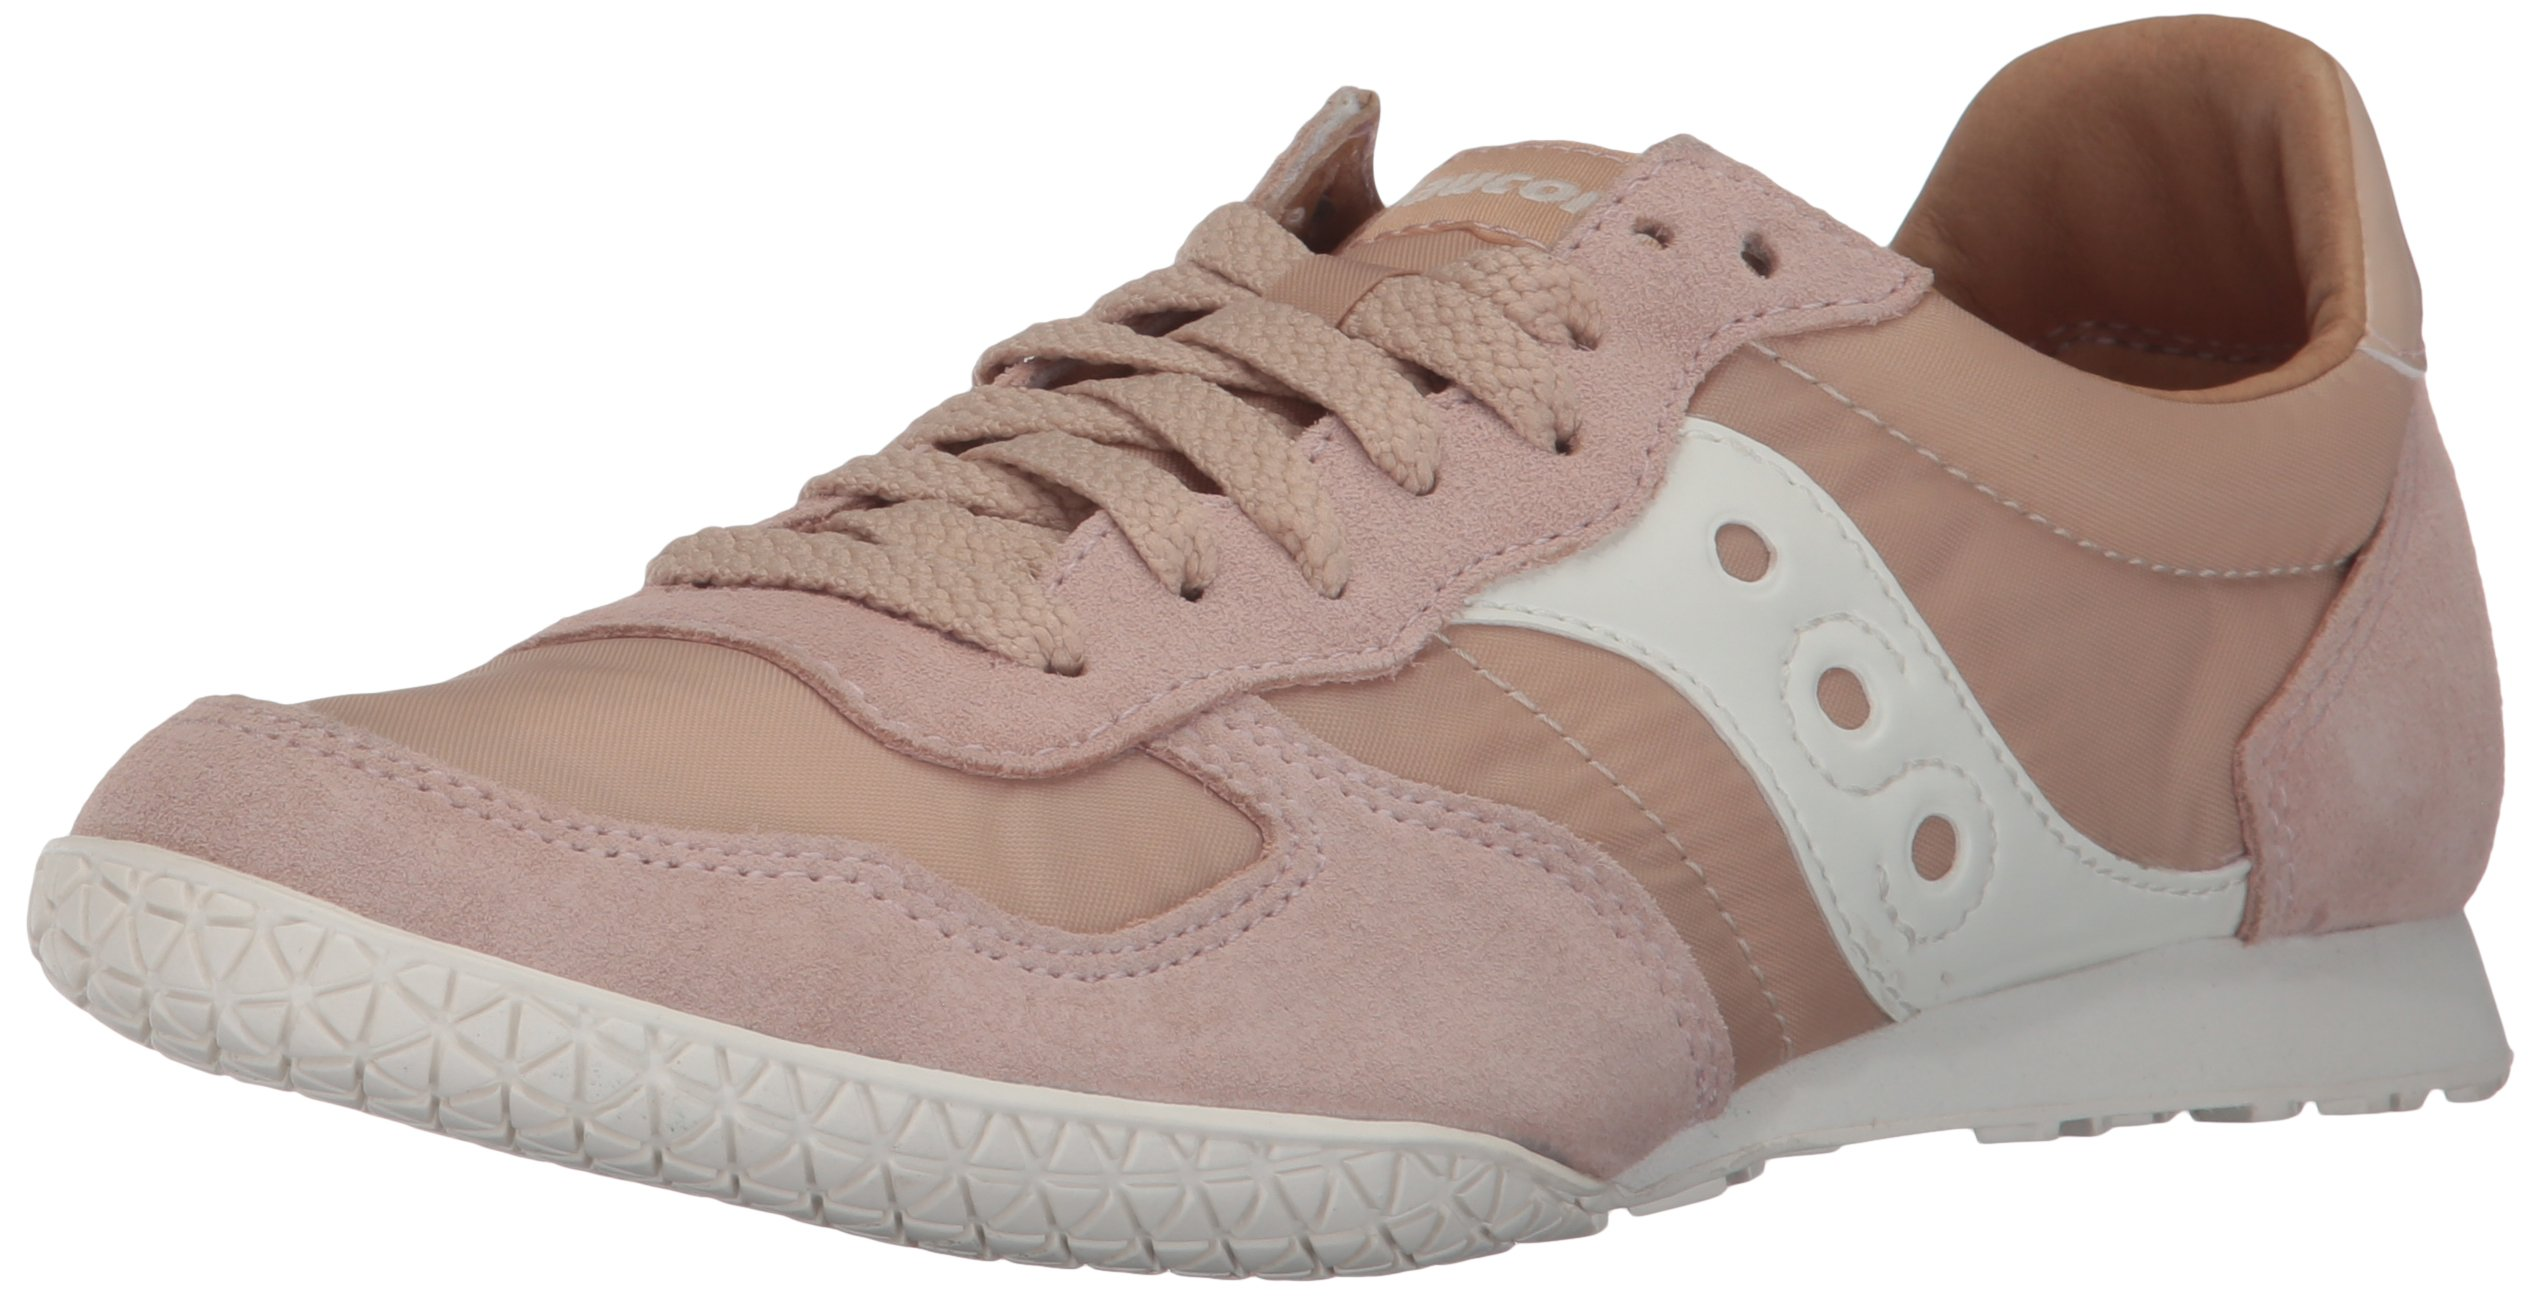 Saucony Originals Women's Bullet Sneaker, Tan Cream, 5.5 Medium US